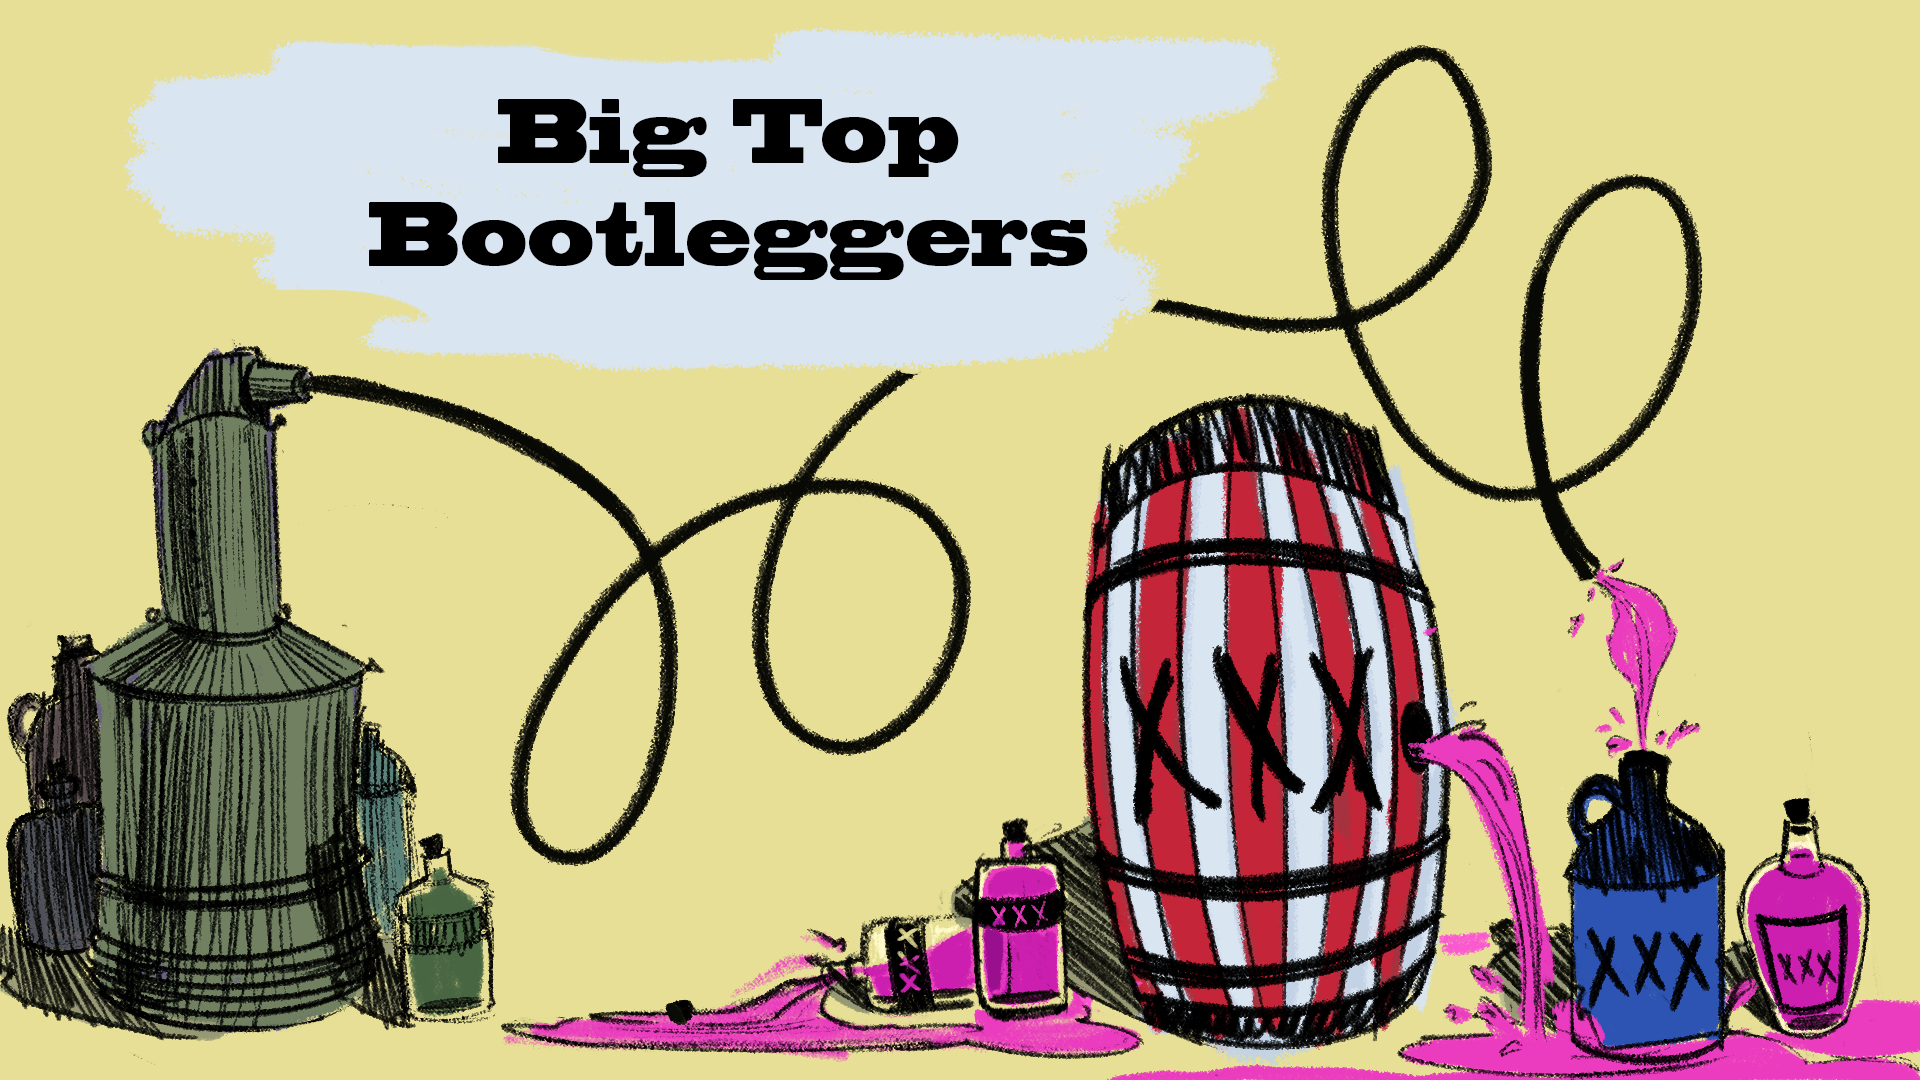 Big Top Bootleggers